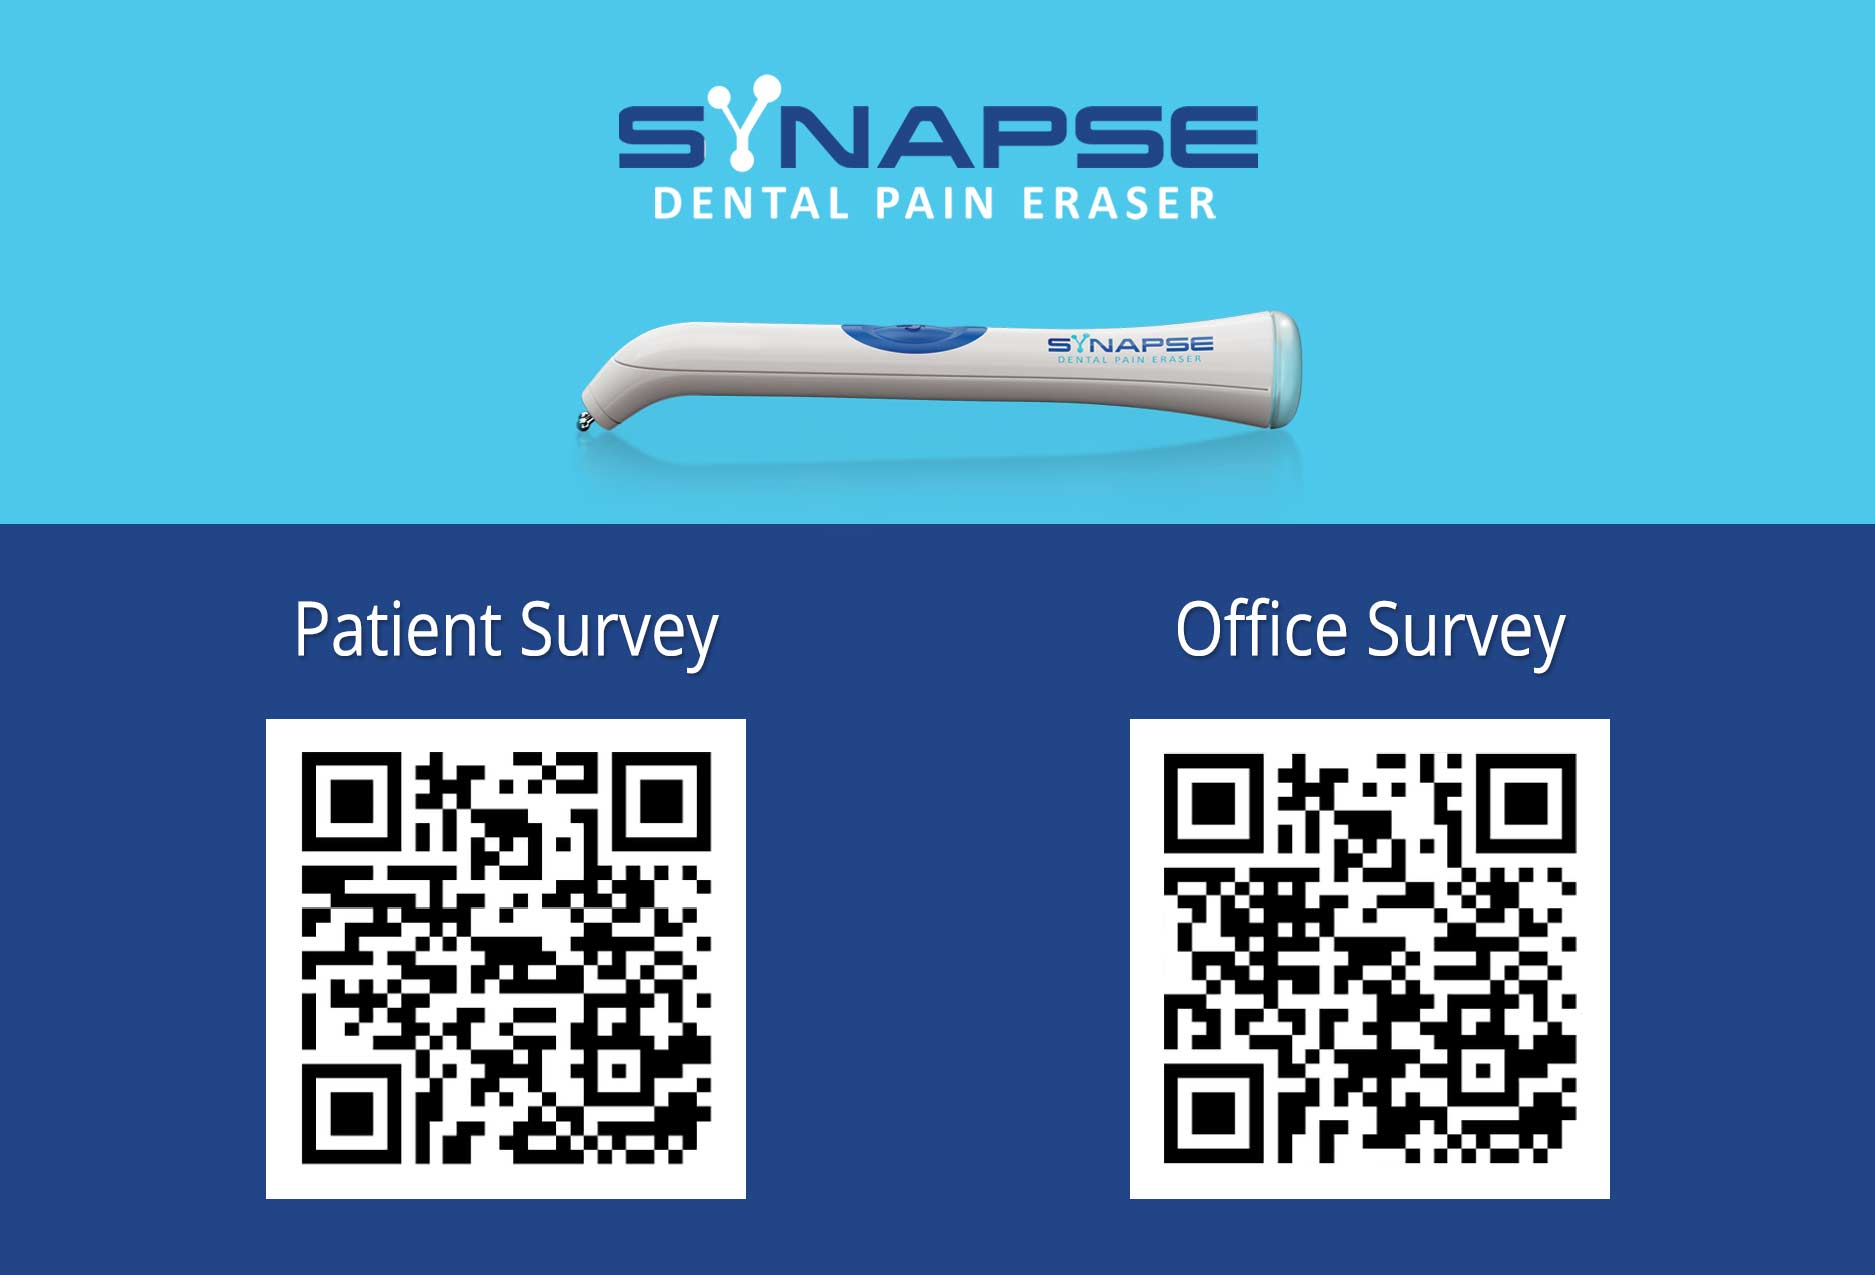 Dental Pain Eraser Survey postcard